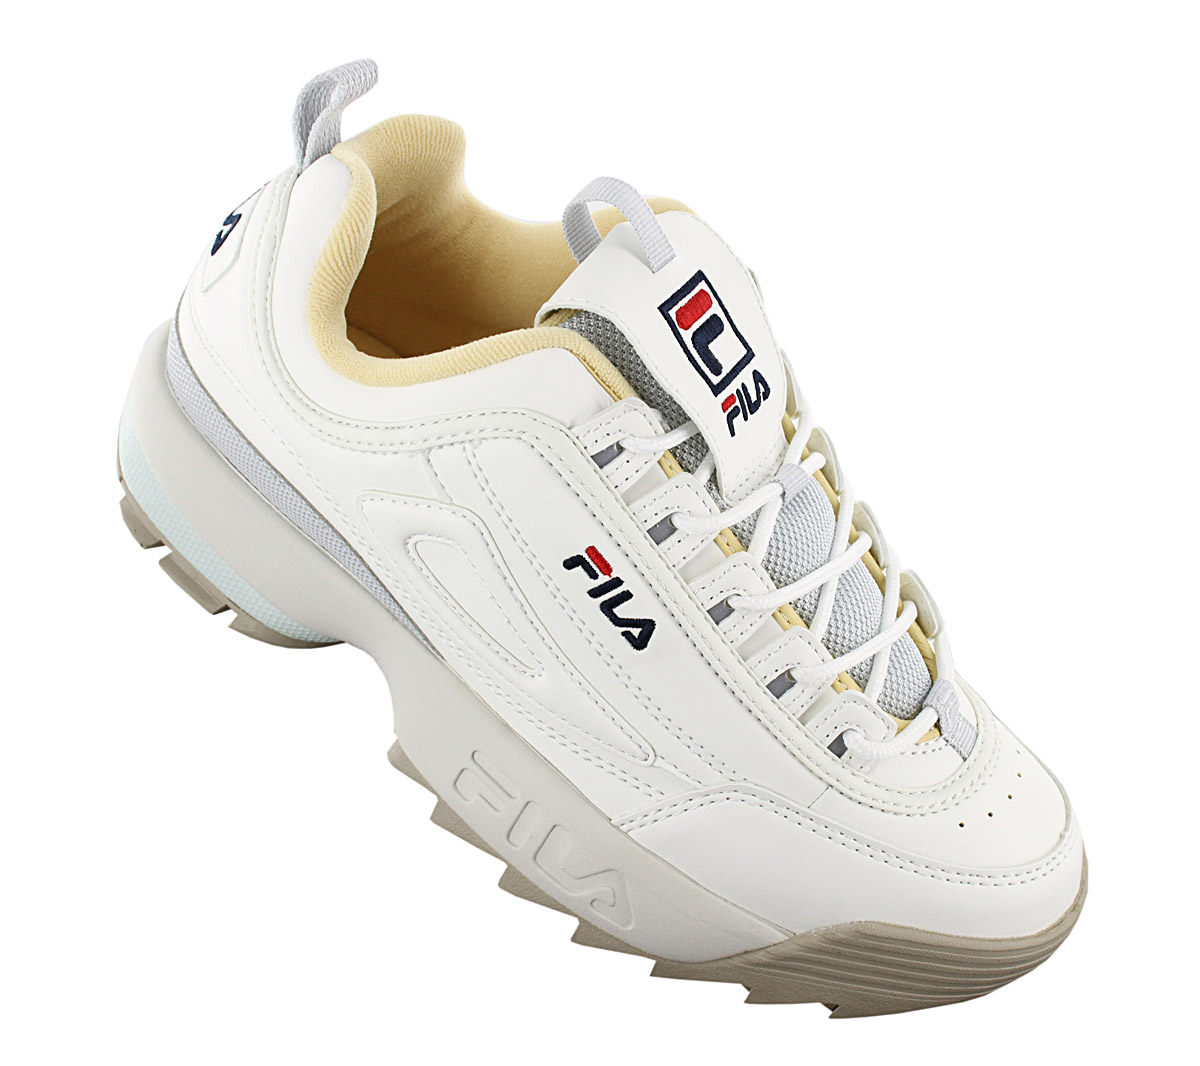 Details about Fila Disruptor CB Low Women's Sneaker 1010604.02X Shoes Platform Trainers New